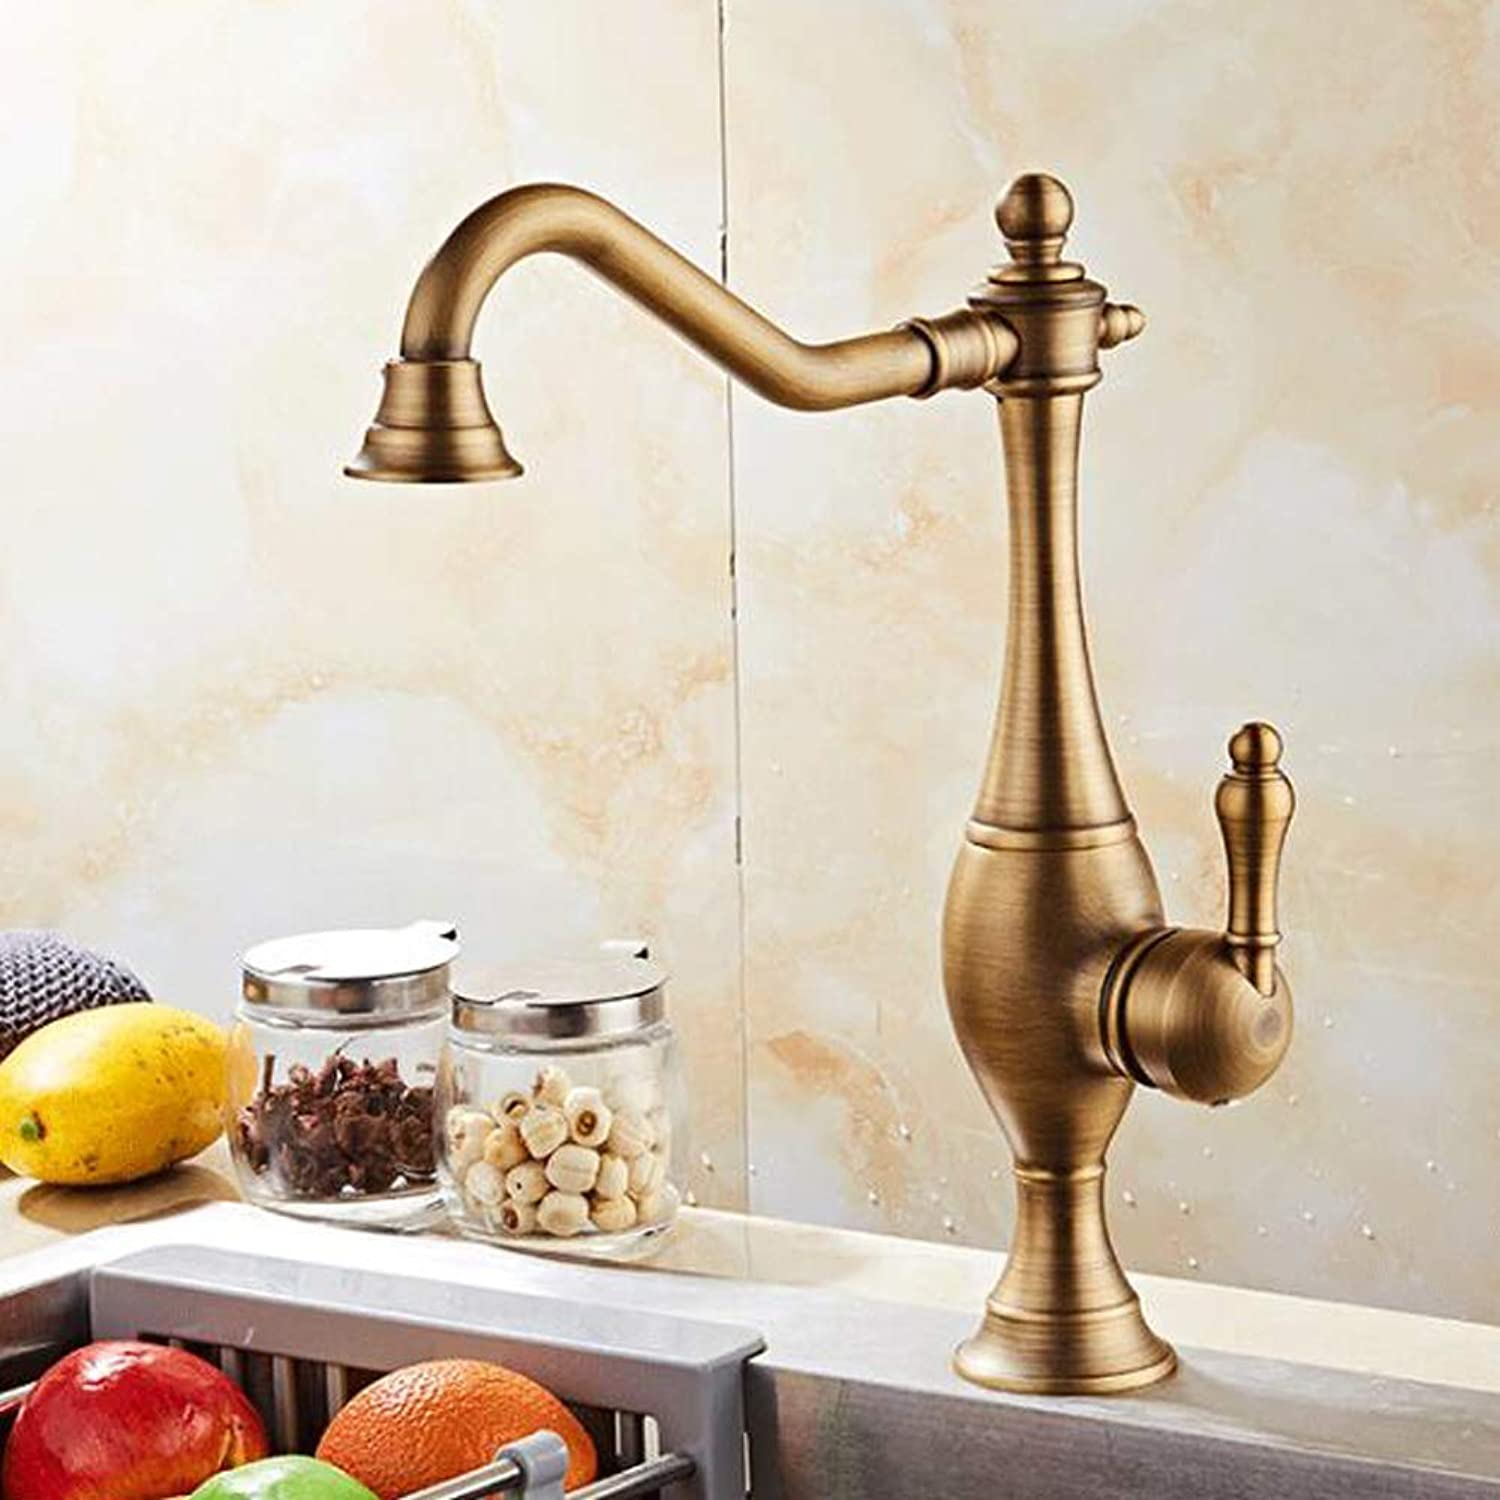 Bathroom Kitchen Sink Faucet,gold All-Copper 360° Swivel Kitchen Hot and Cold Brushed Plating Sink Mixer Taps.